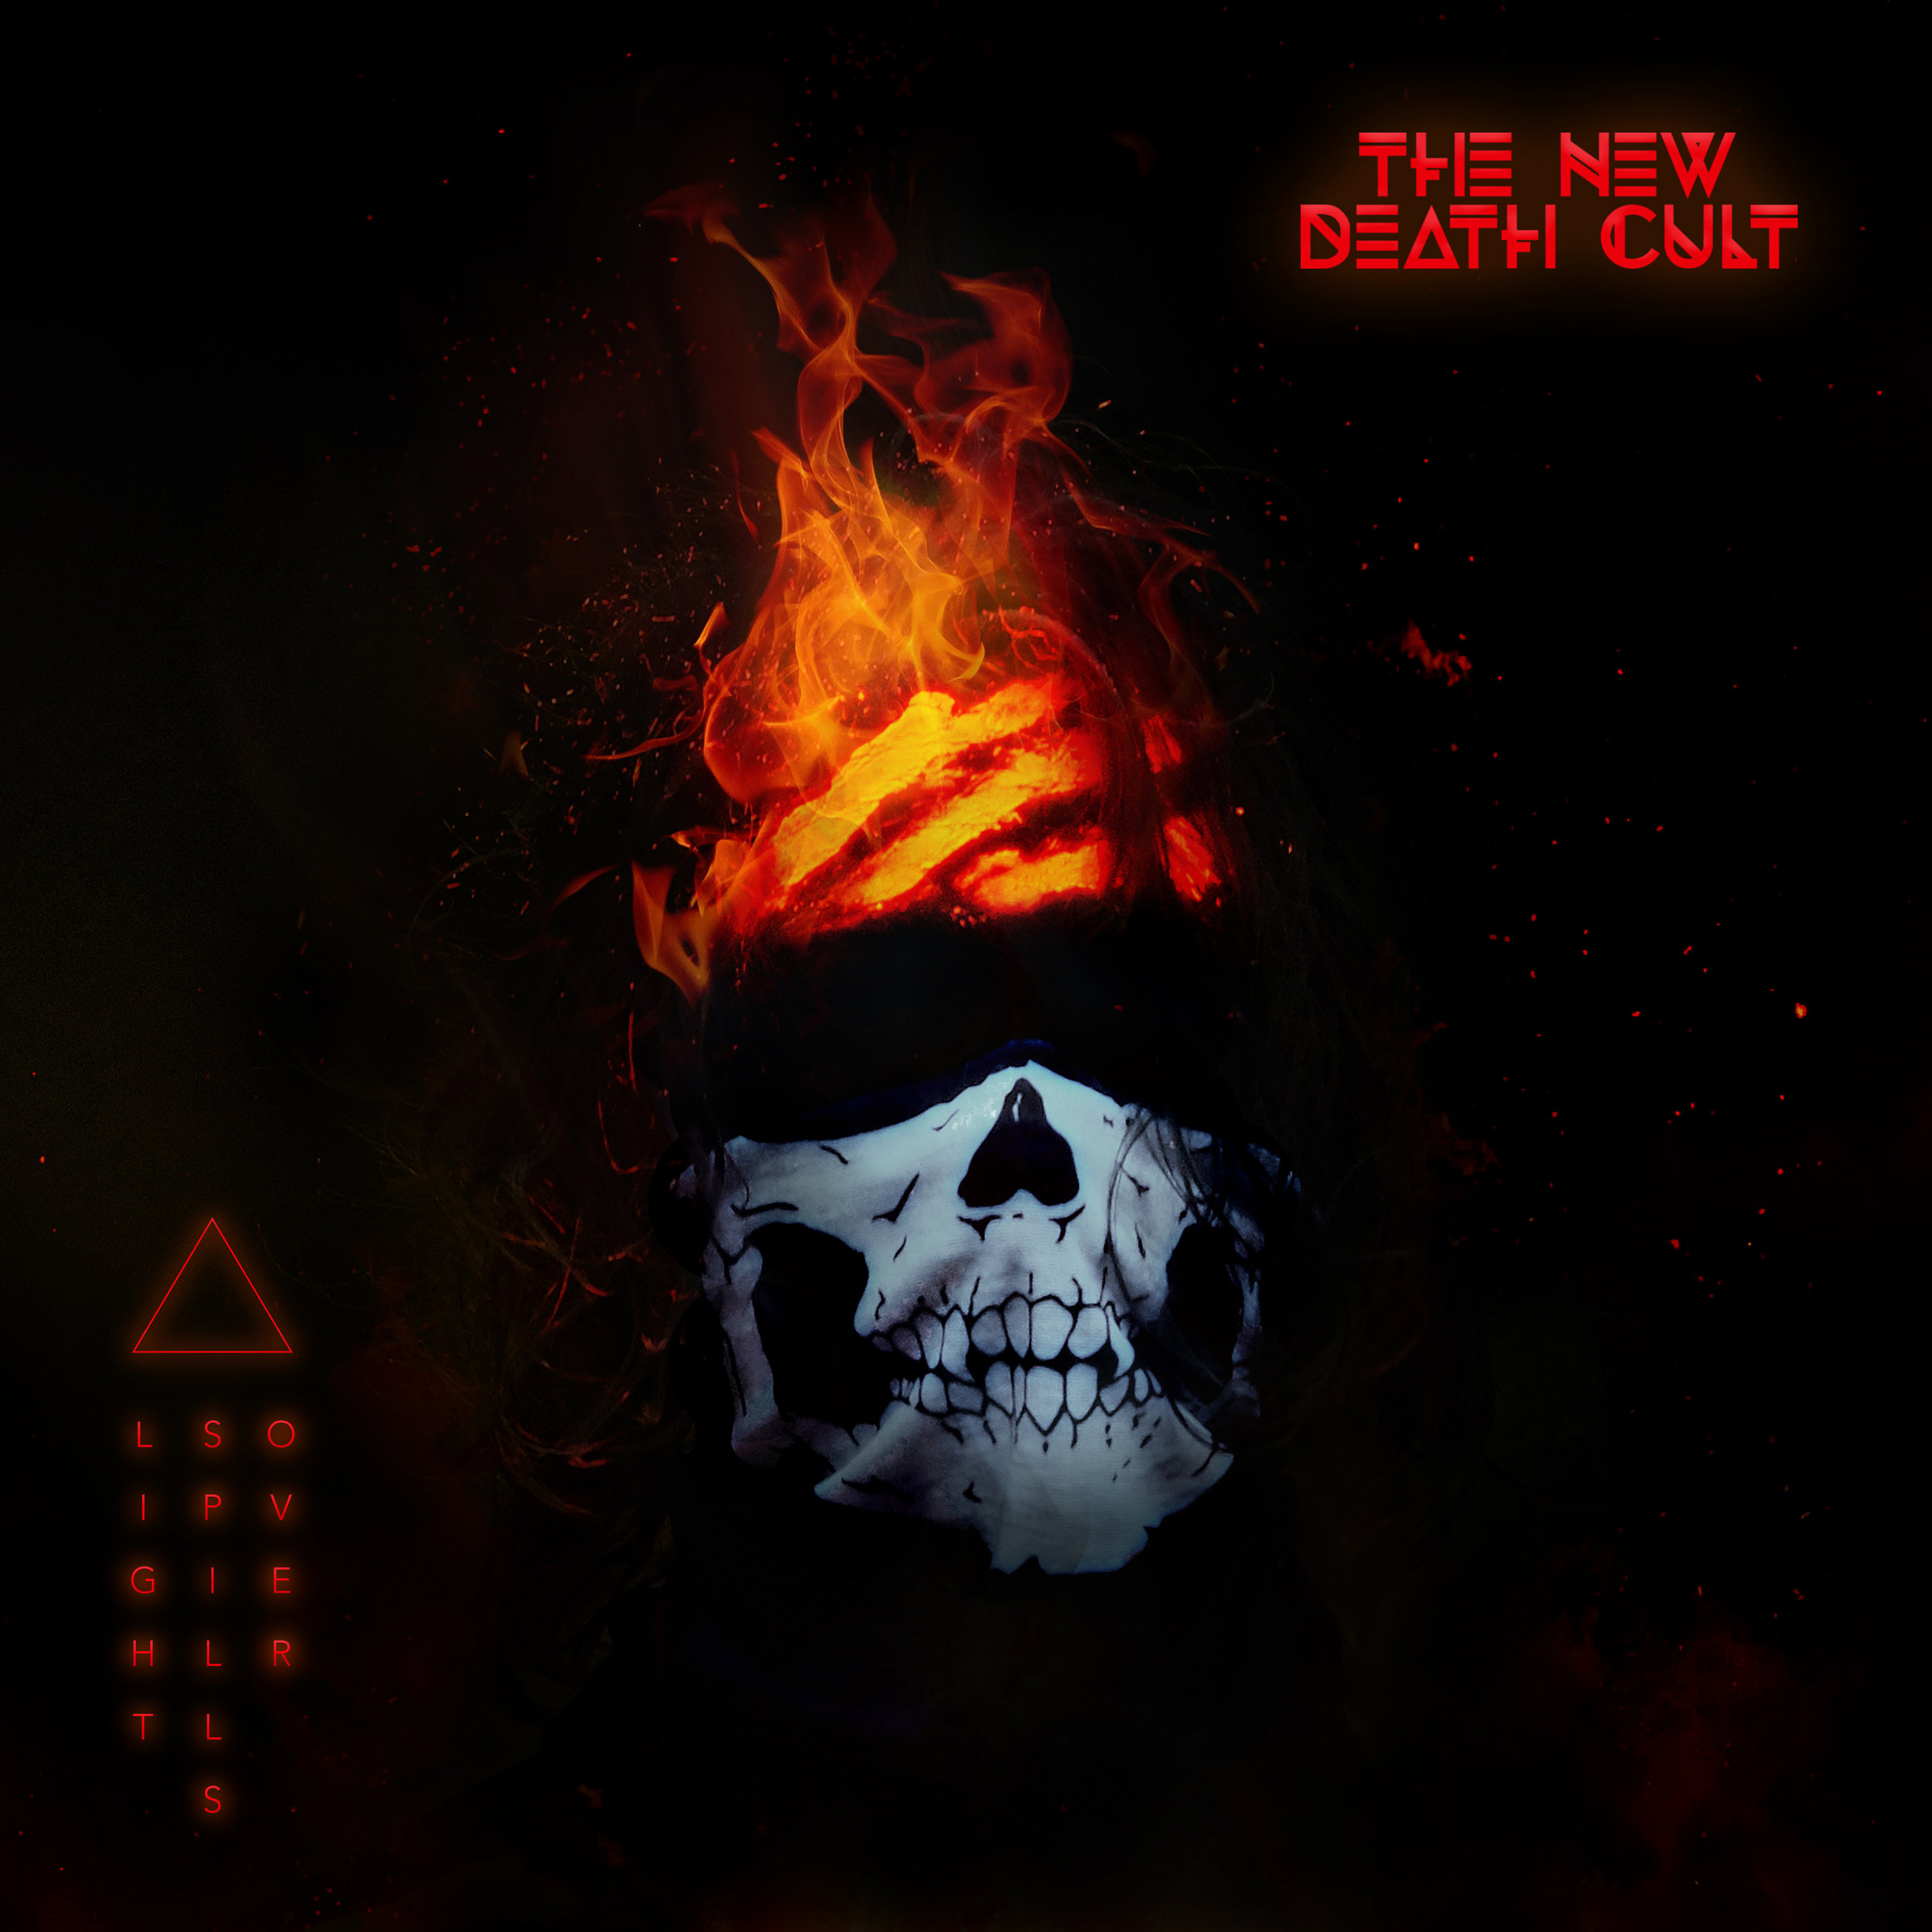 THE_NEW_DEATH_CULT_Light_Spills_Over_single_cover